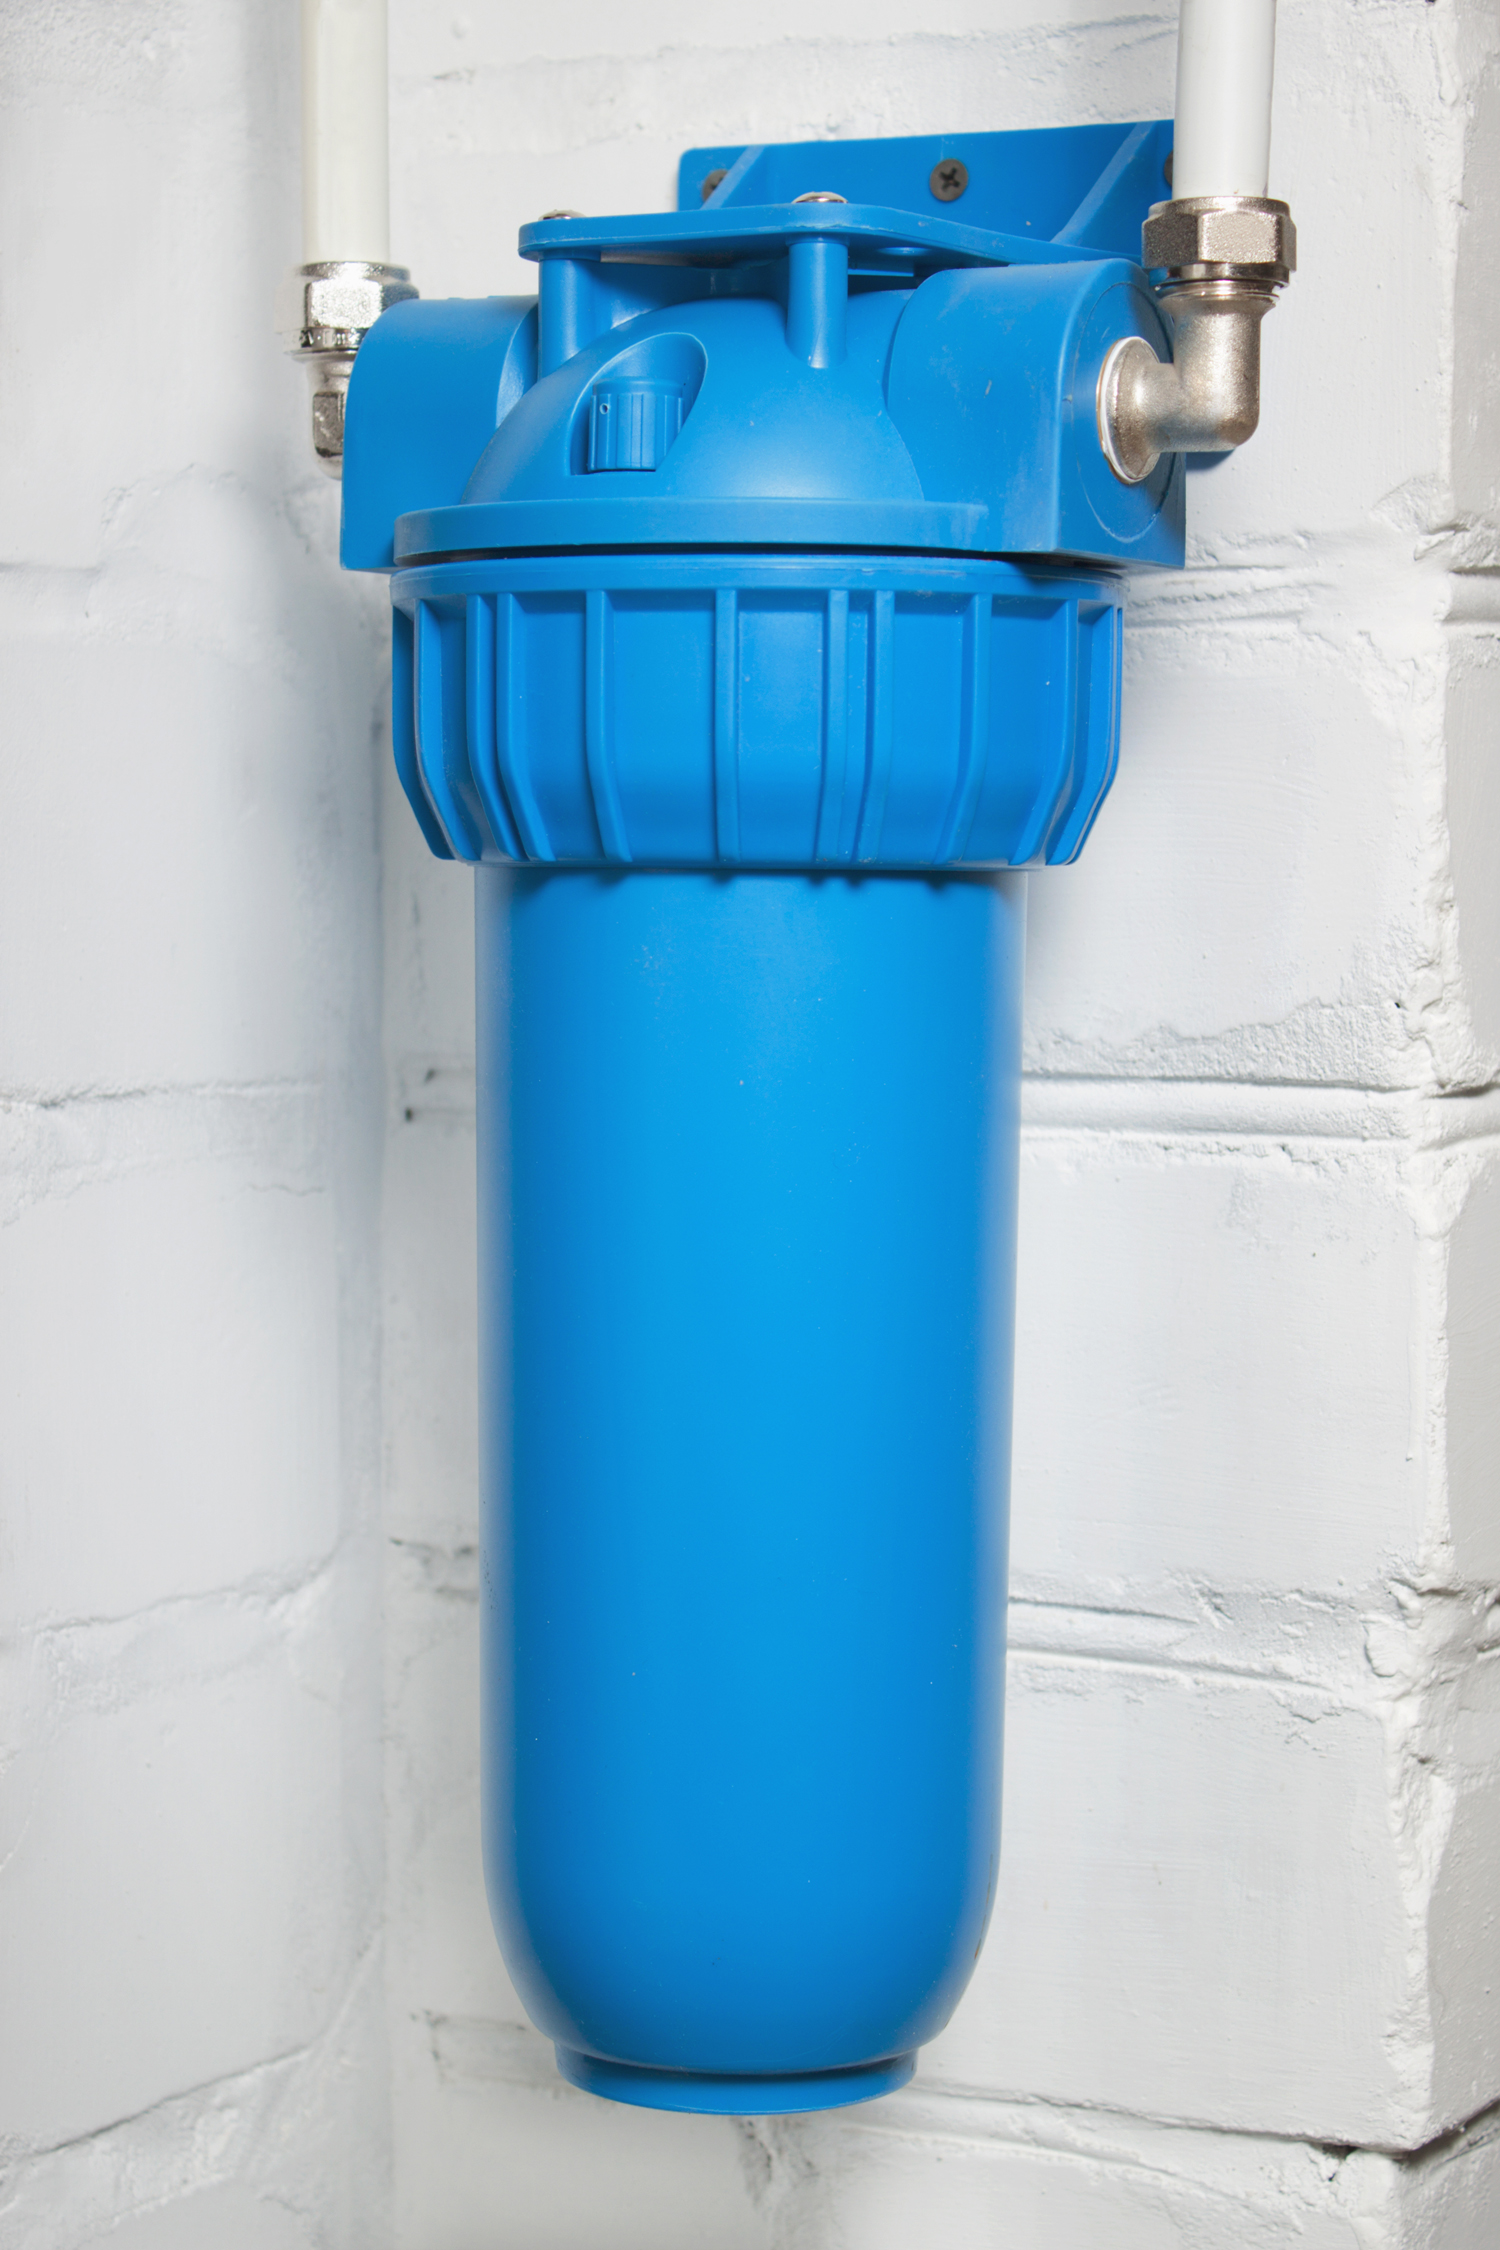 Filter for water treatment